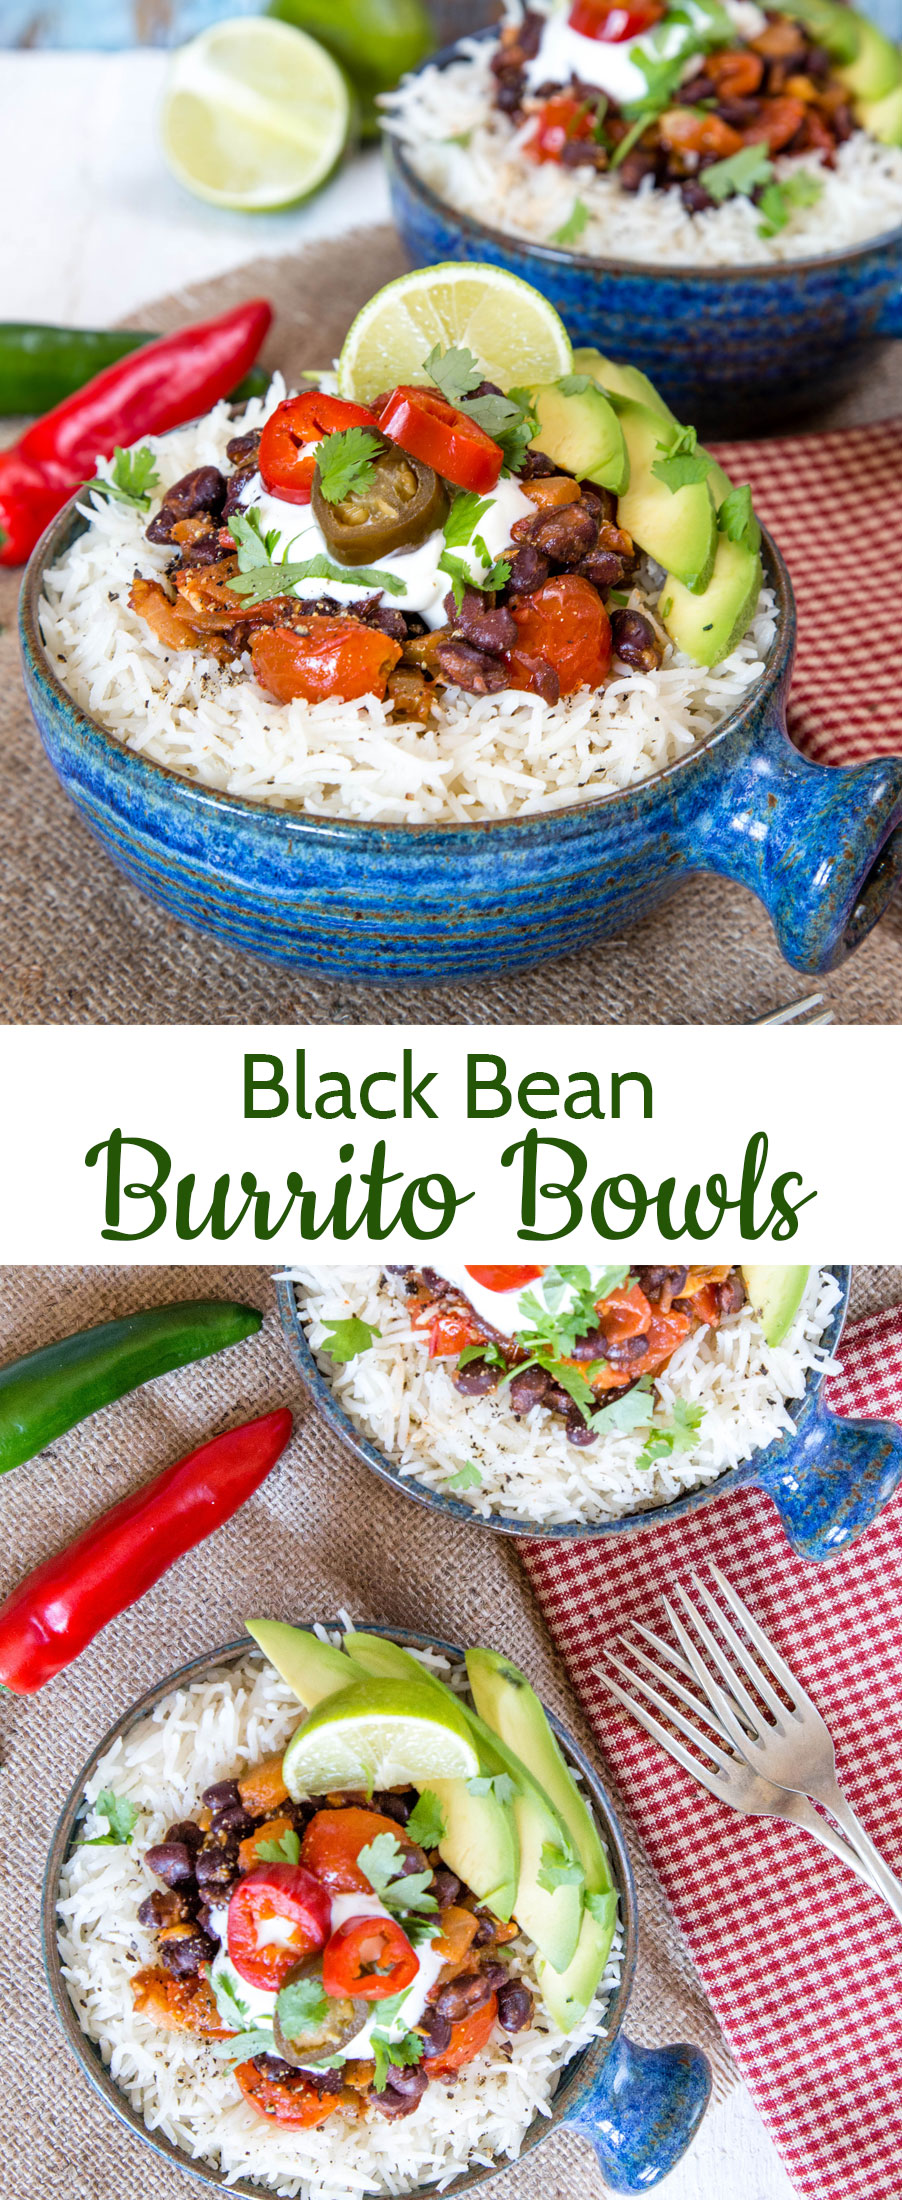 These black bean and tomato burrito bowls have a spicy kick from pickled jalapeños.